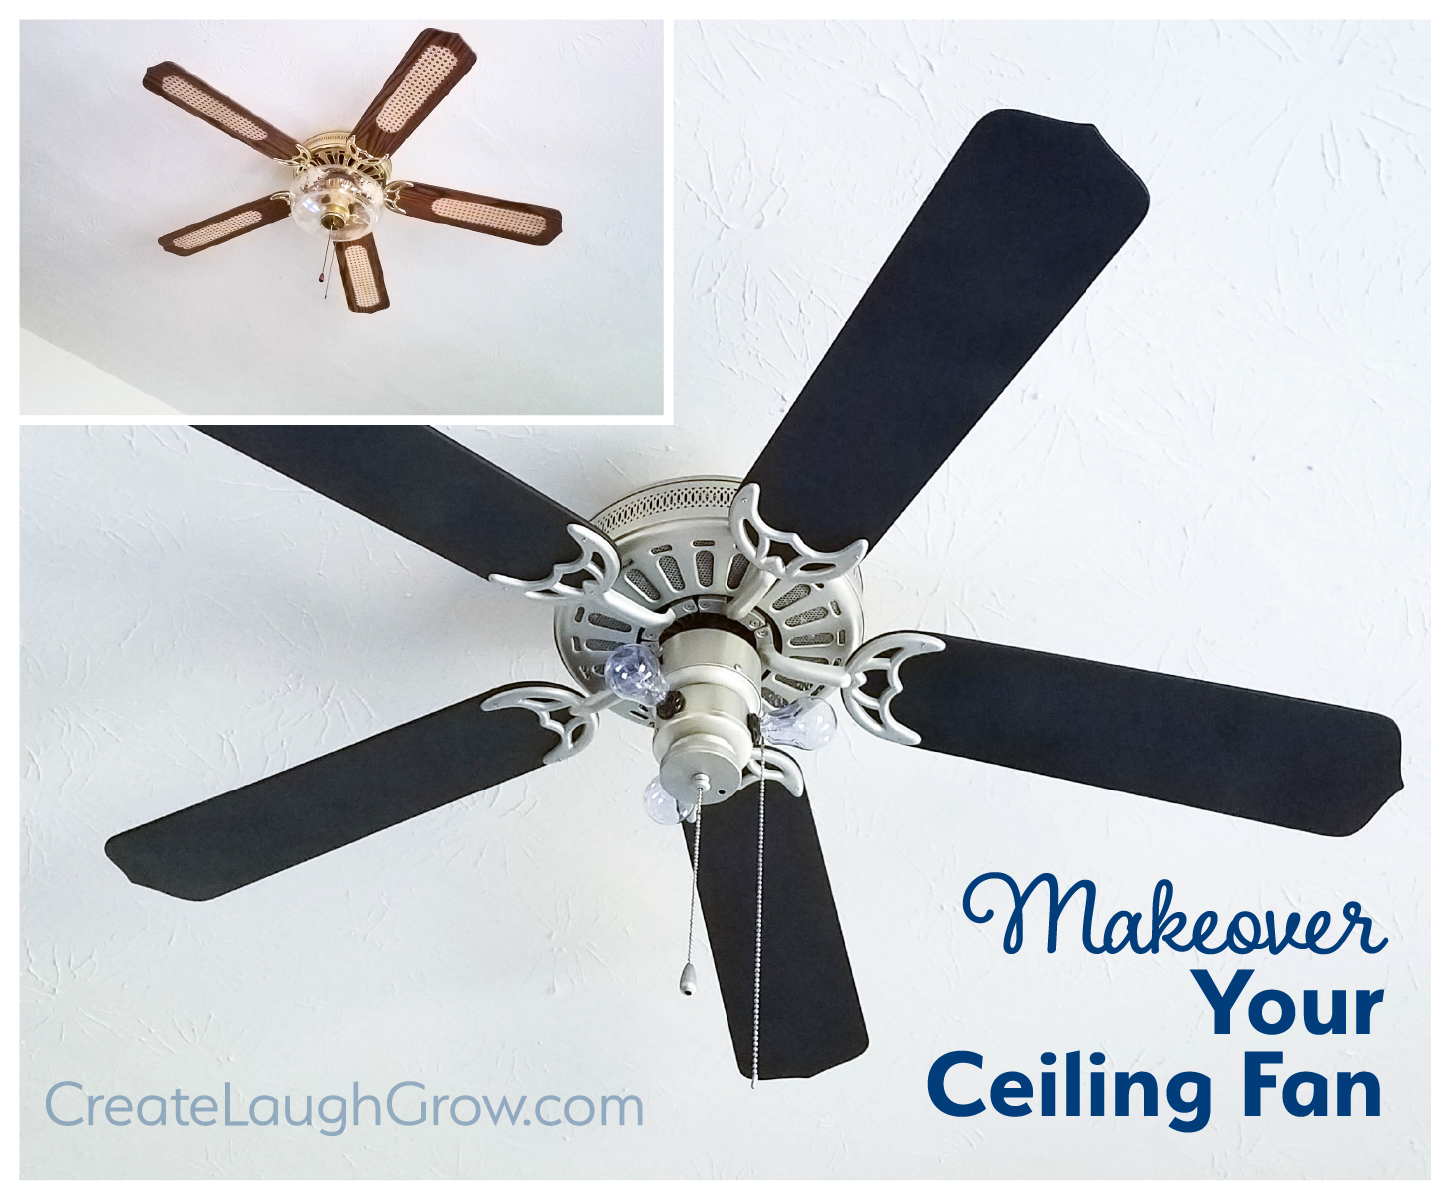 How To Makeover Your Ceiling Fan DIY